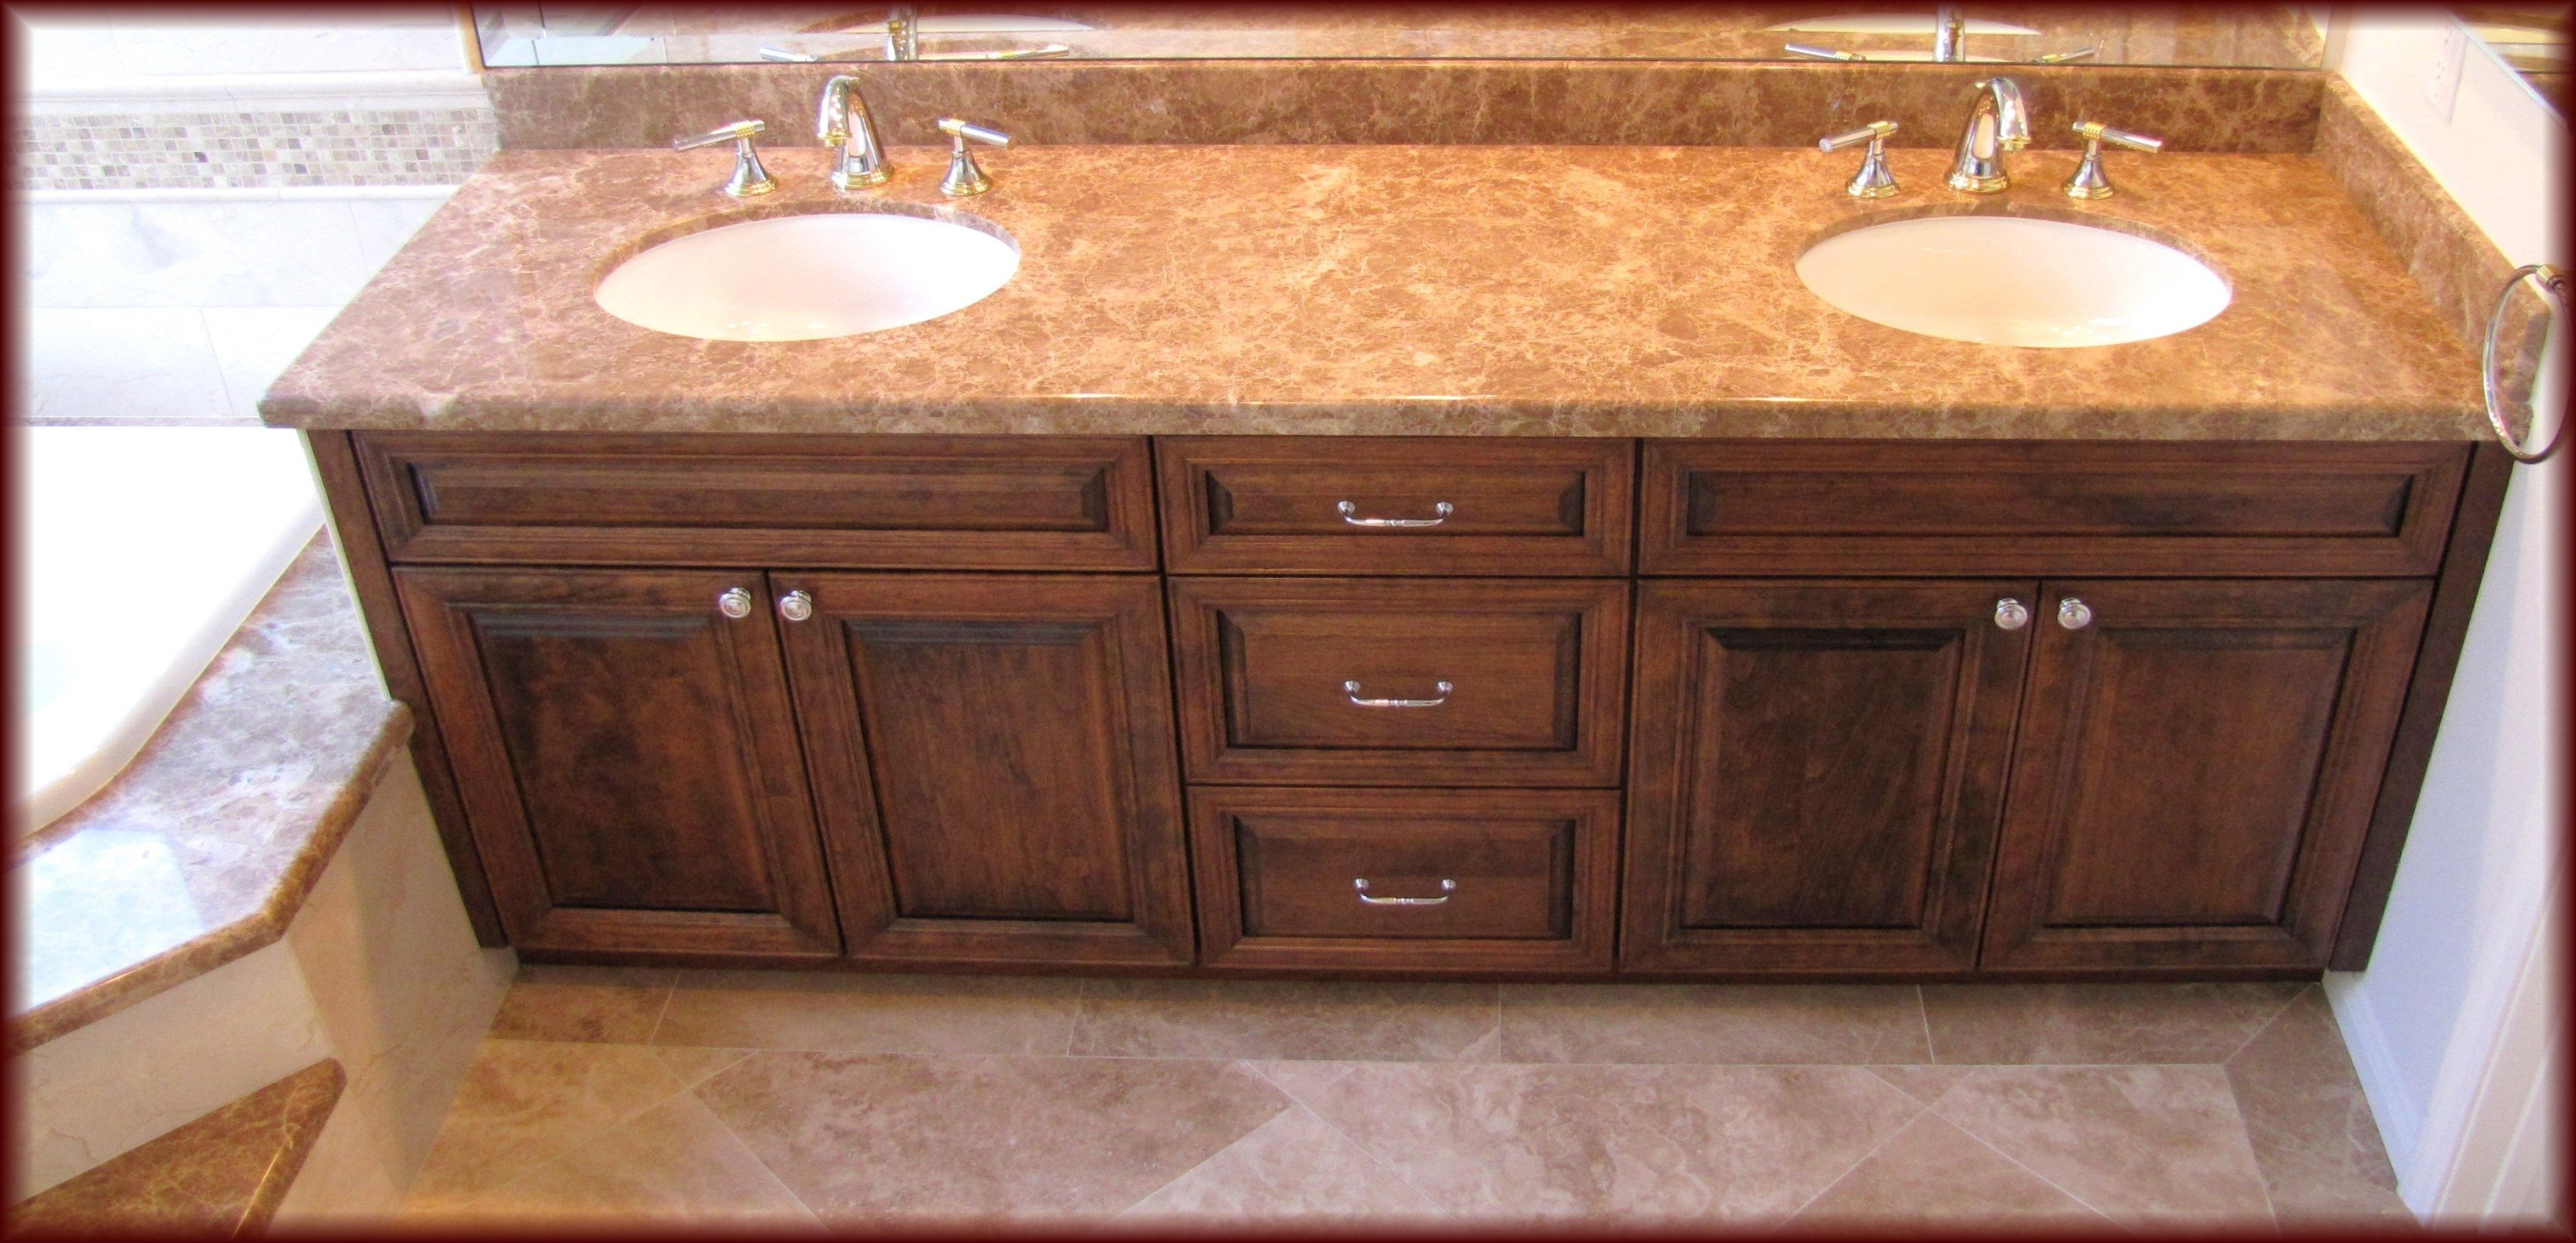 New Bathroom Vanities Portland Oregon Unique 44 For Your Home Decorating